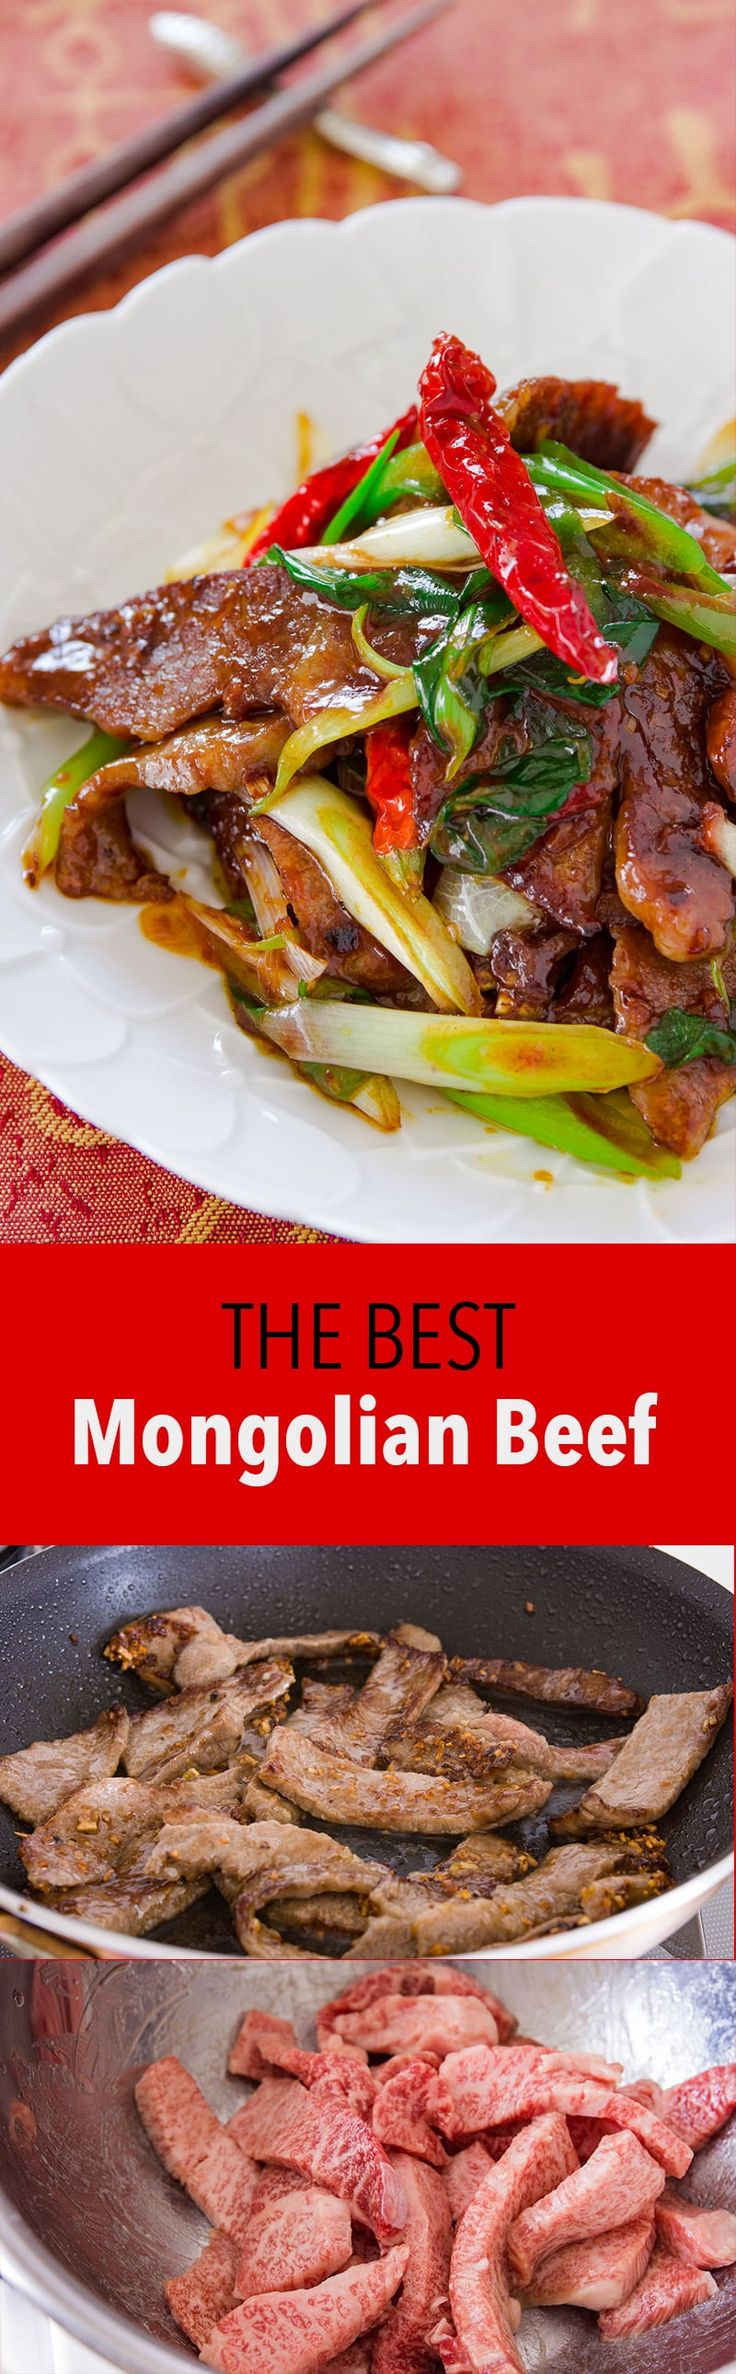 While not a Mongolian dish, Mongolian beef is a delicious Chinese-American classic with beef, garlic and scallions stir-fried with Hoisin sauce.